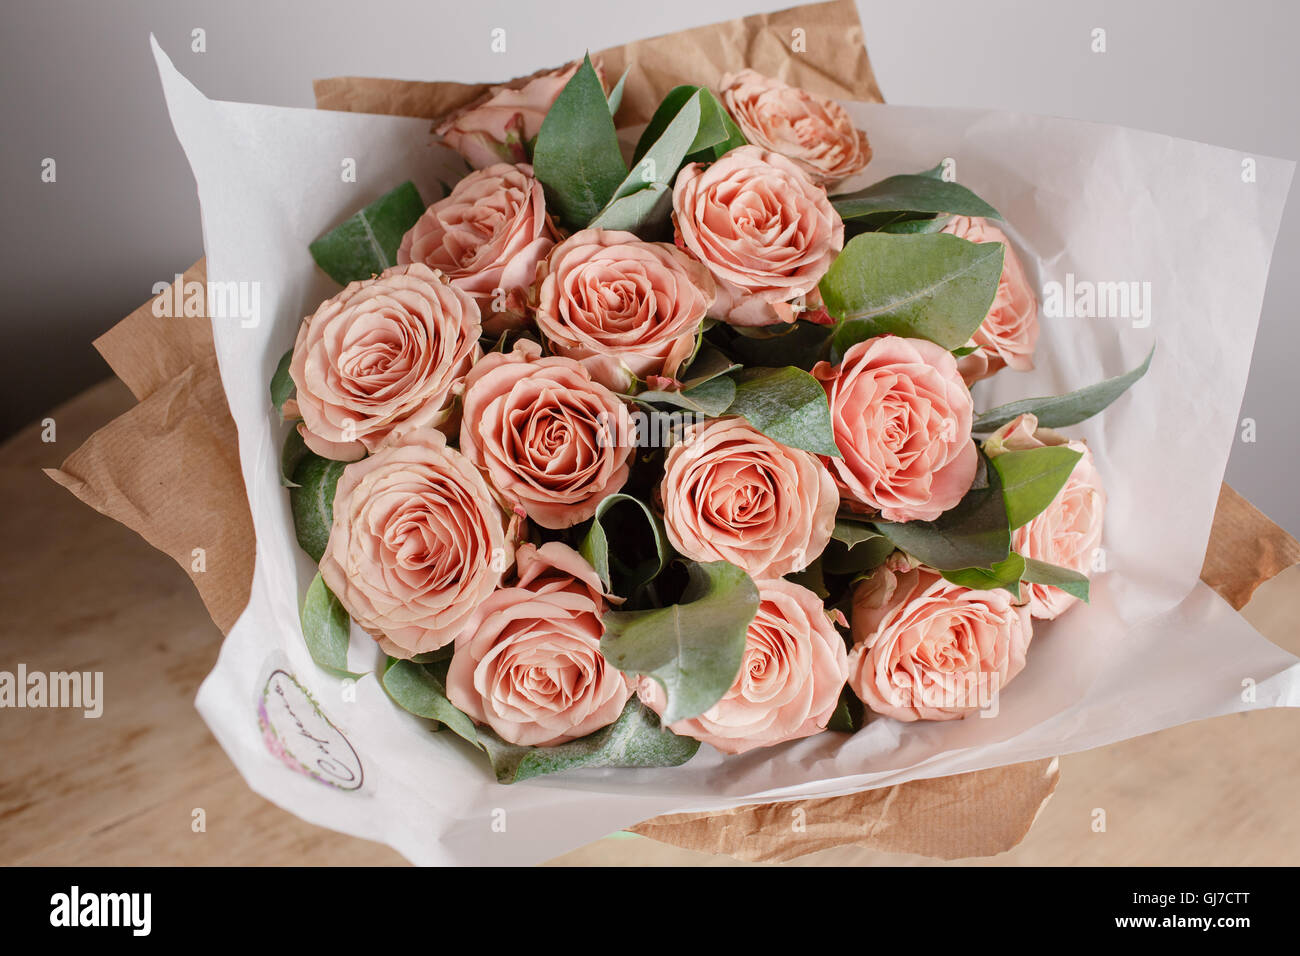 Capuchino Grade Roses Florist Girl With Rich Bunch Flowers Fresh